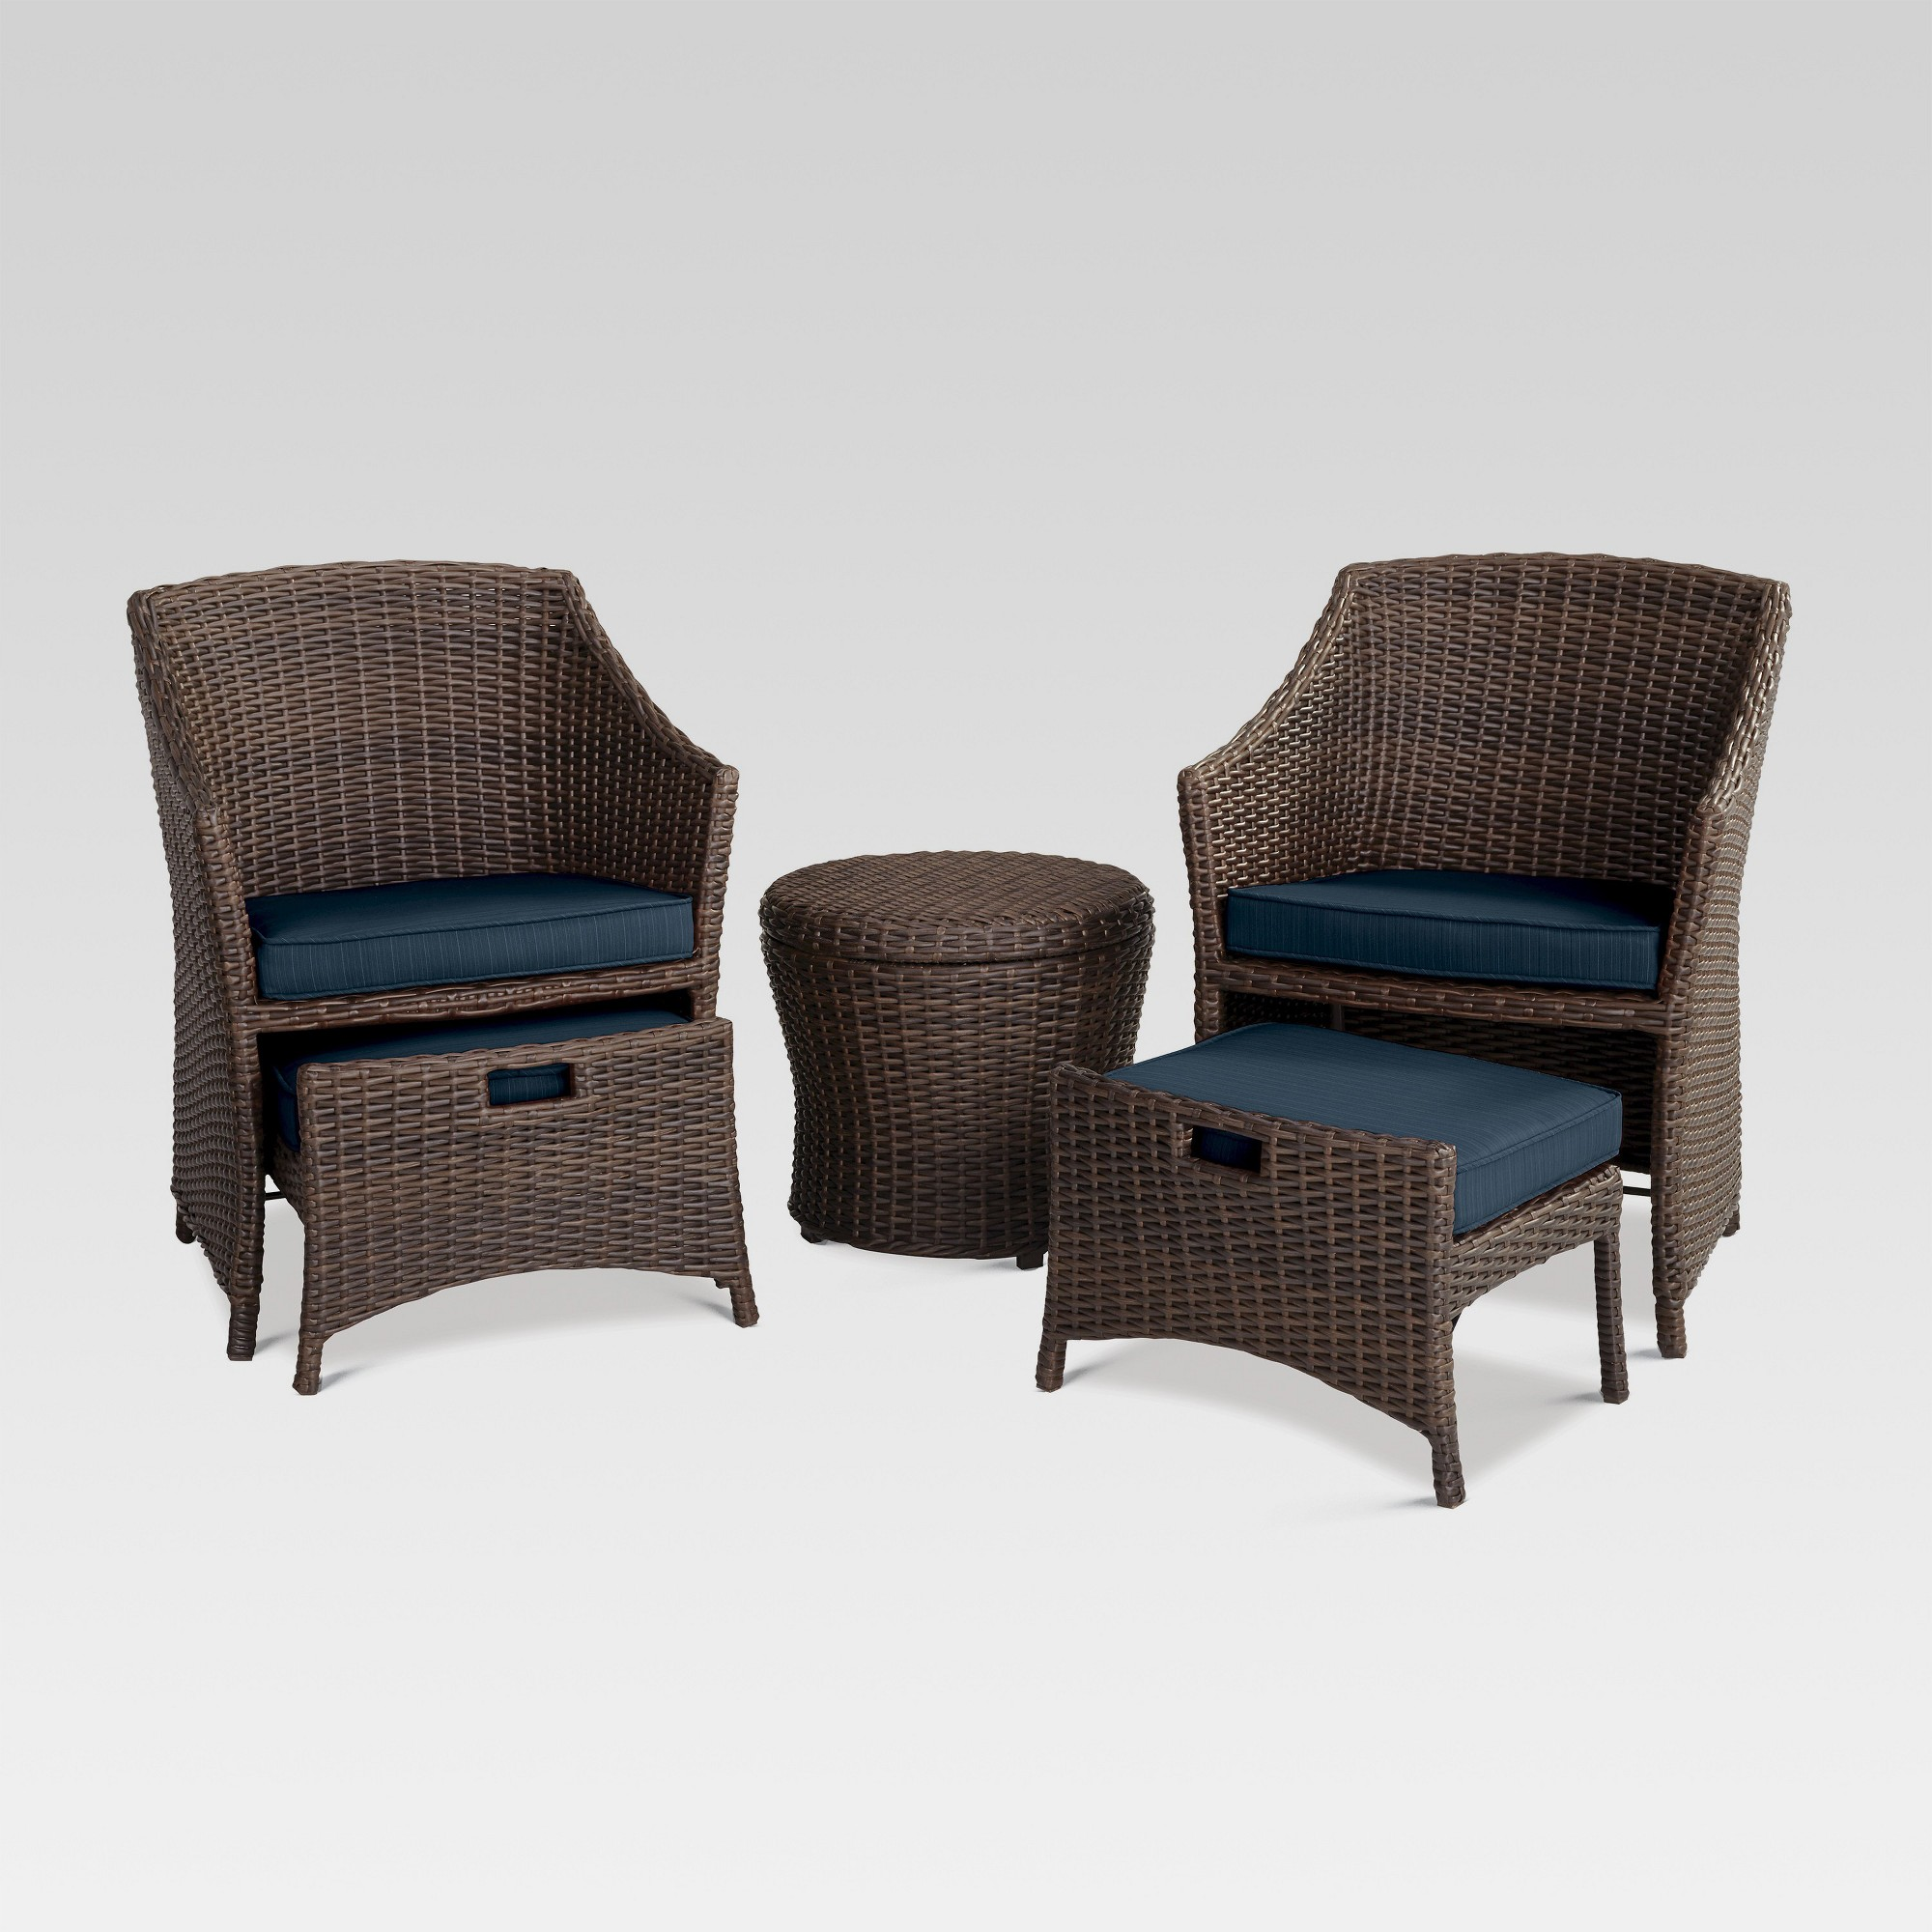 Belvedere 5pc All Weather Wicker Patio Chat Set Navy Blue